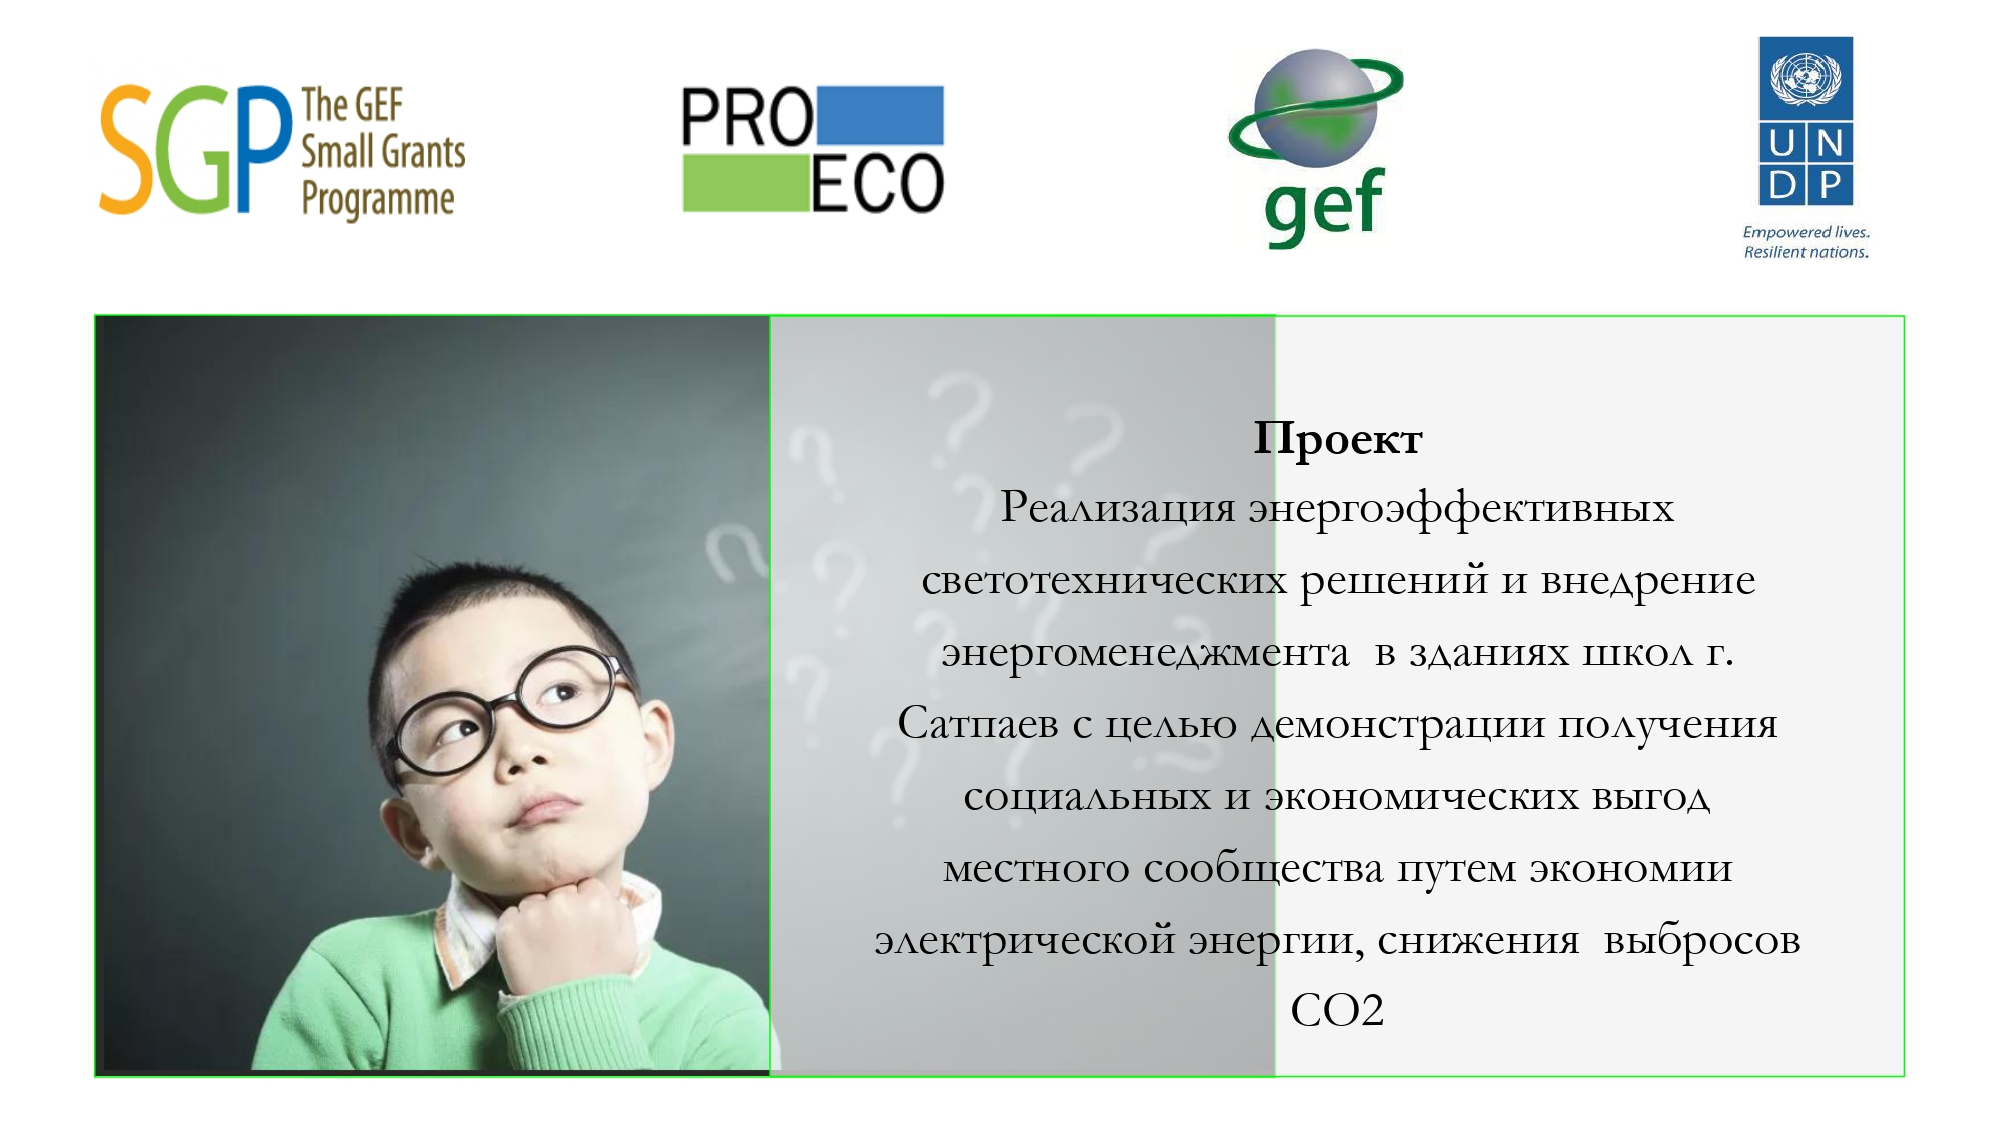 Сатпаев_pages-to-jpg-0001